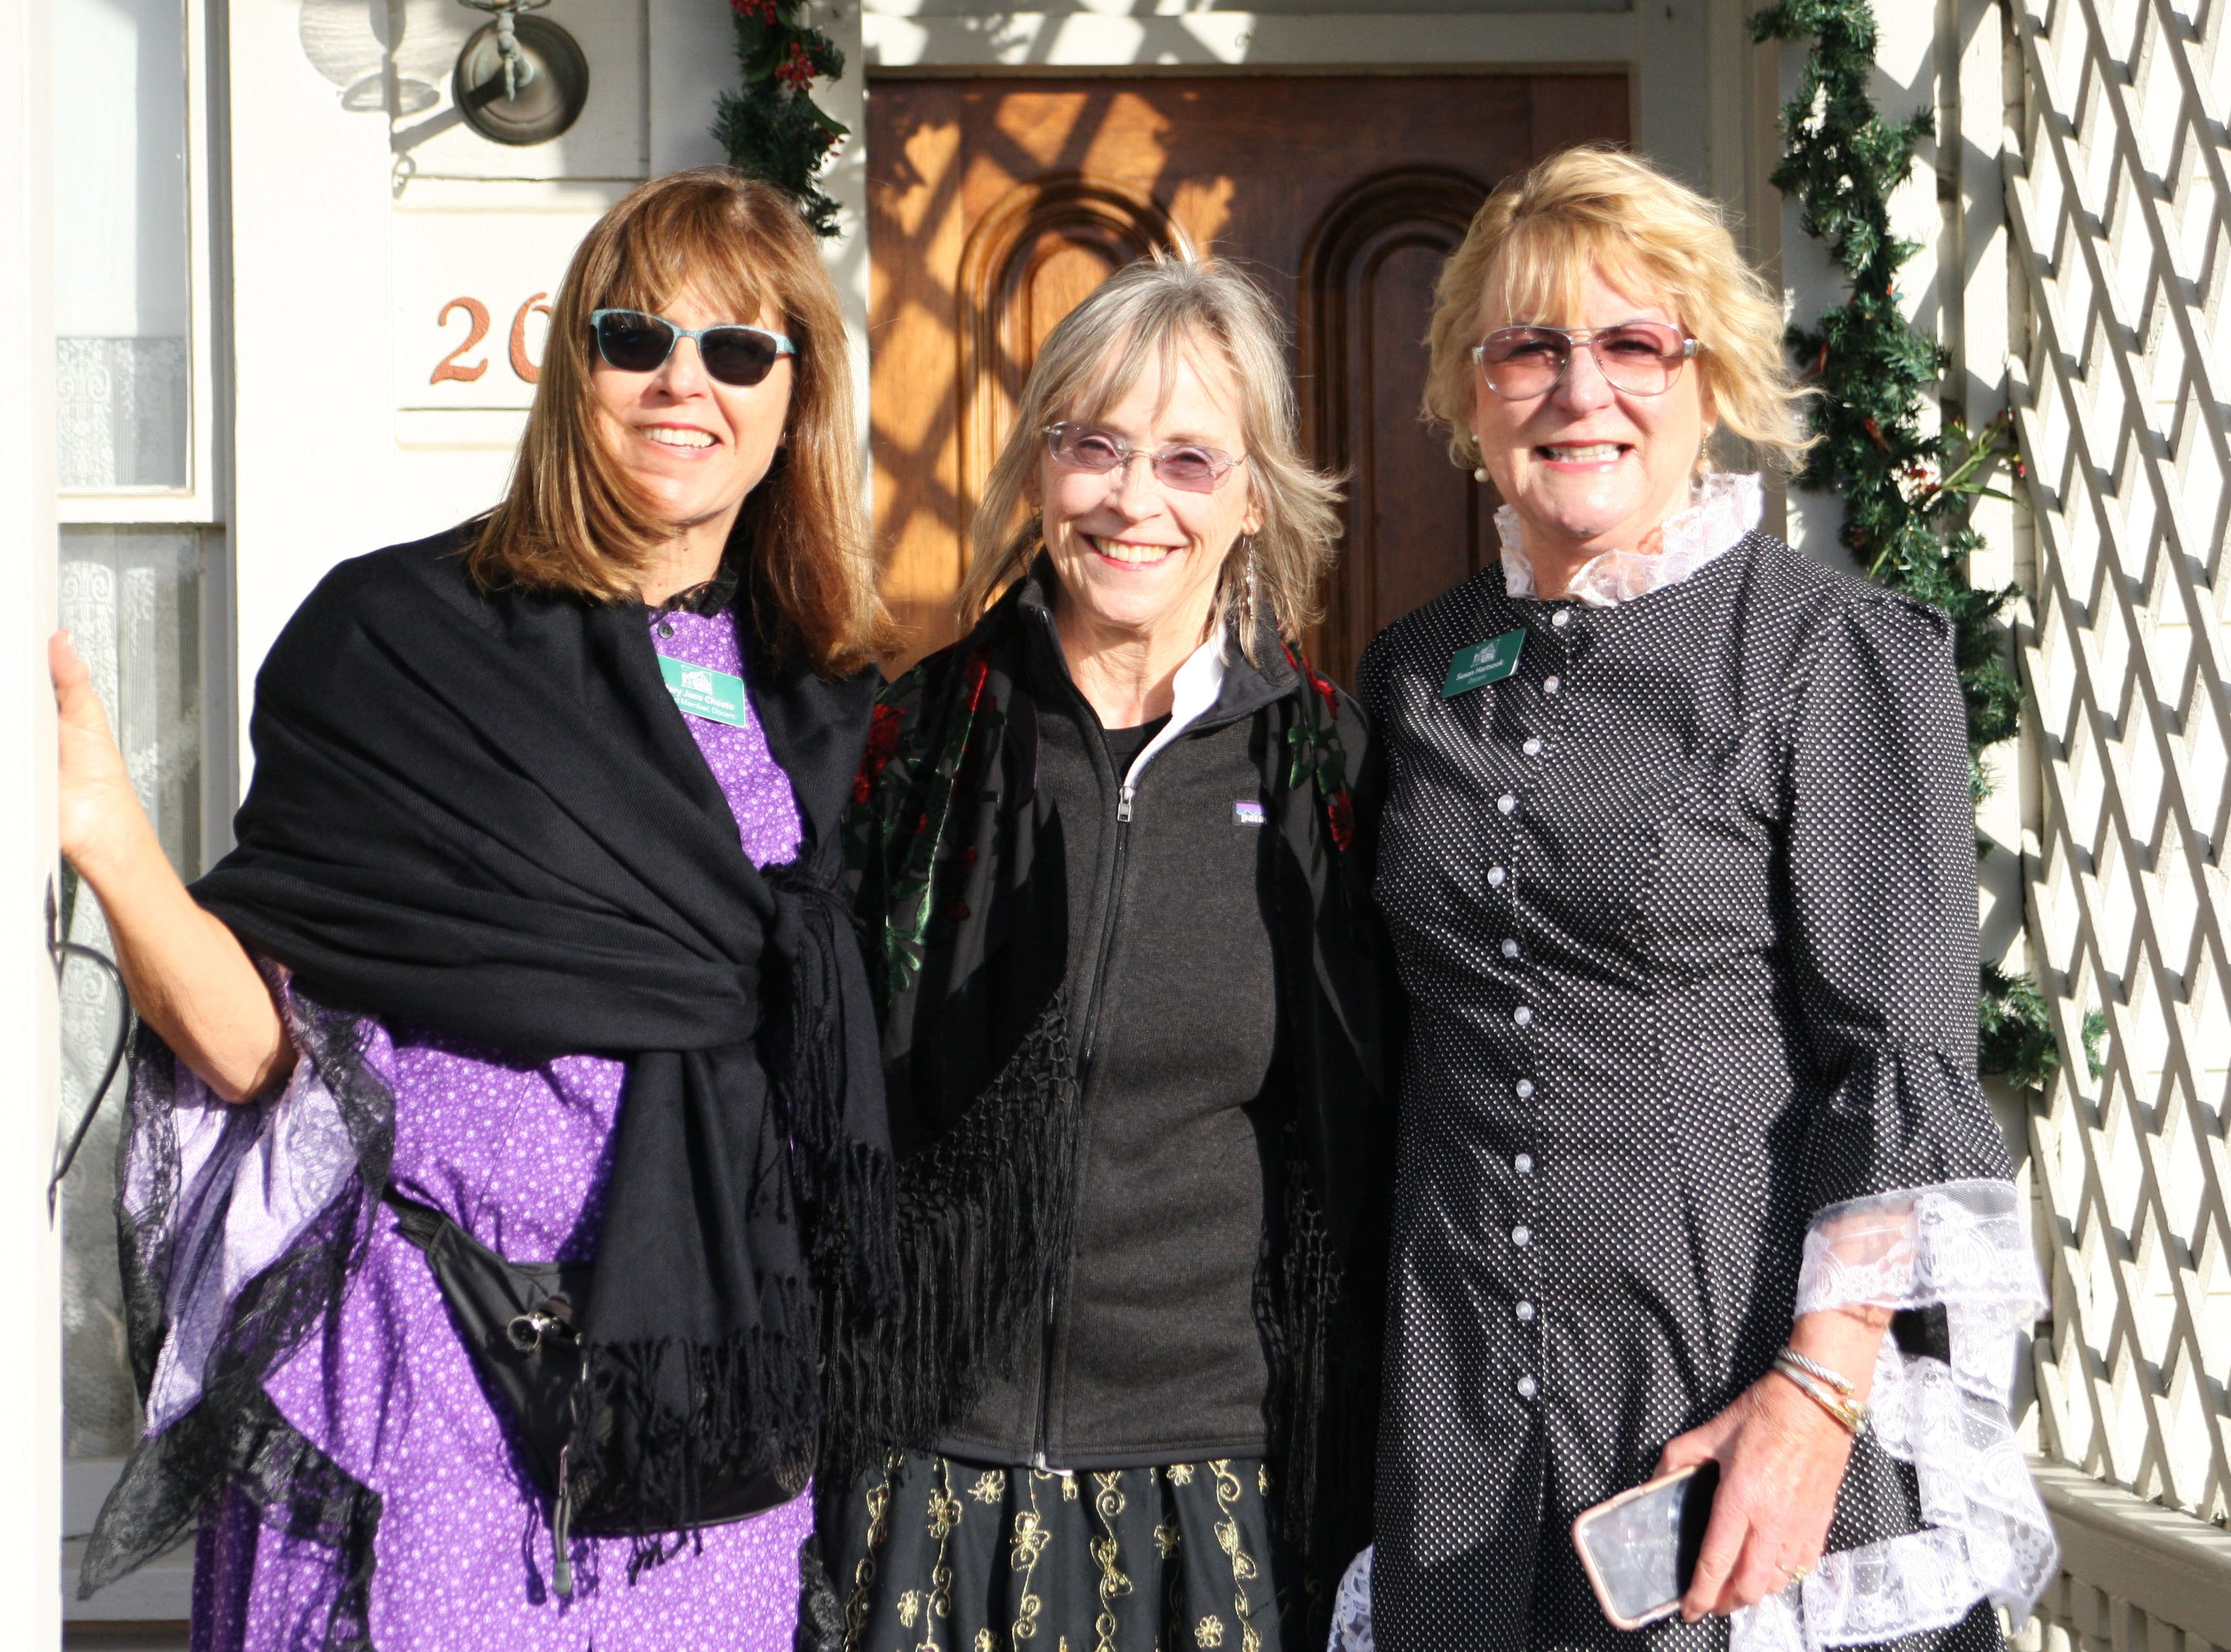 Volunteers Mary Jane Choate, ret. judge Kay Kingsley and Susan Hartsock pose in their 1850s finery.